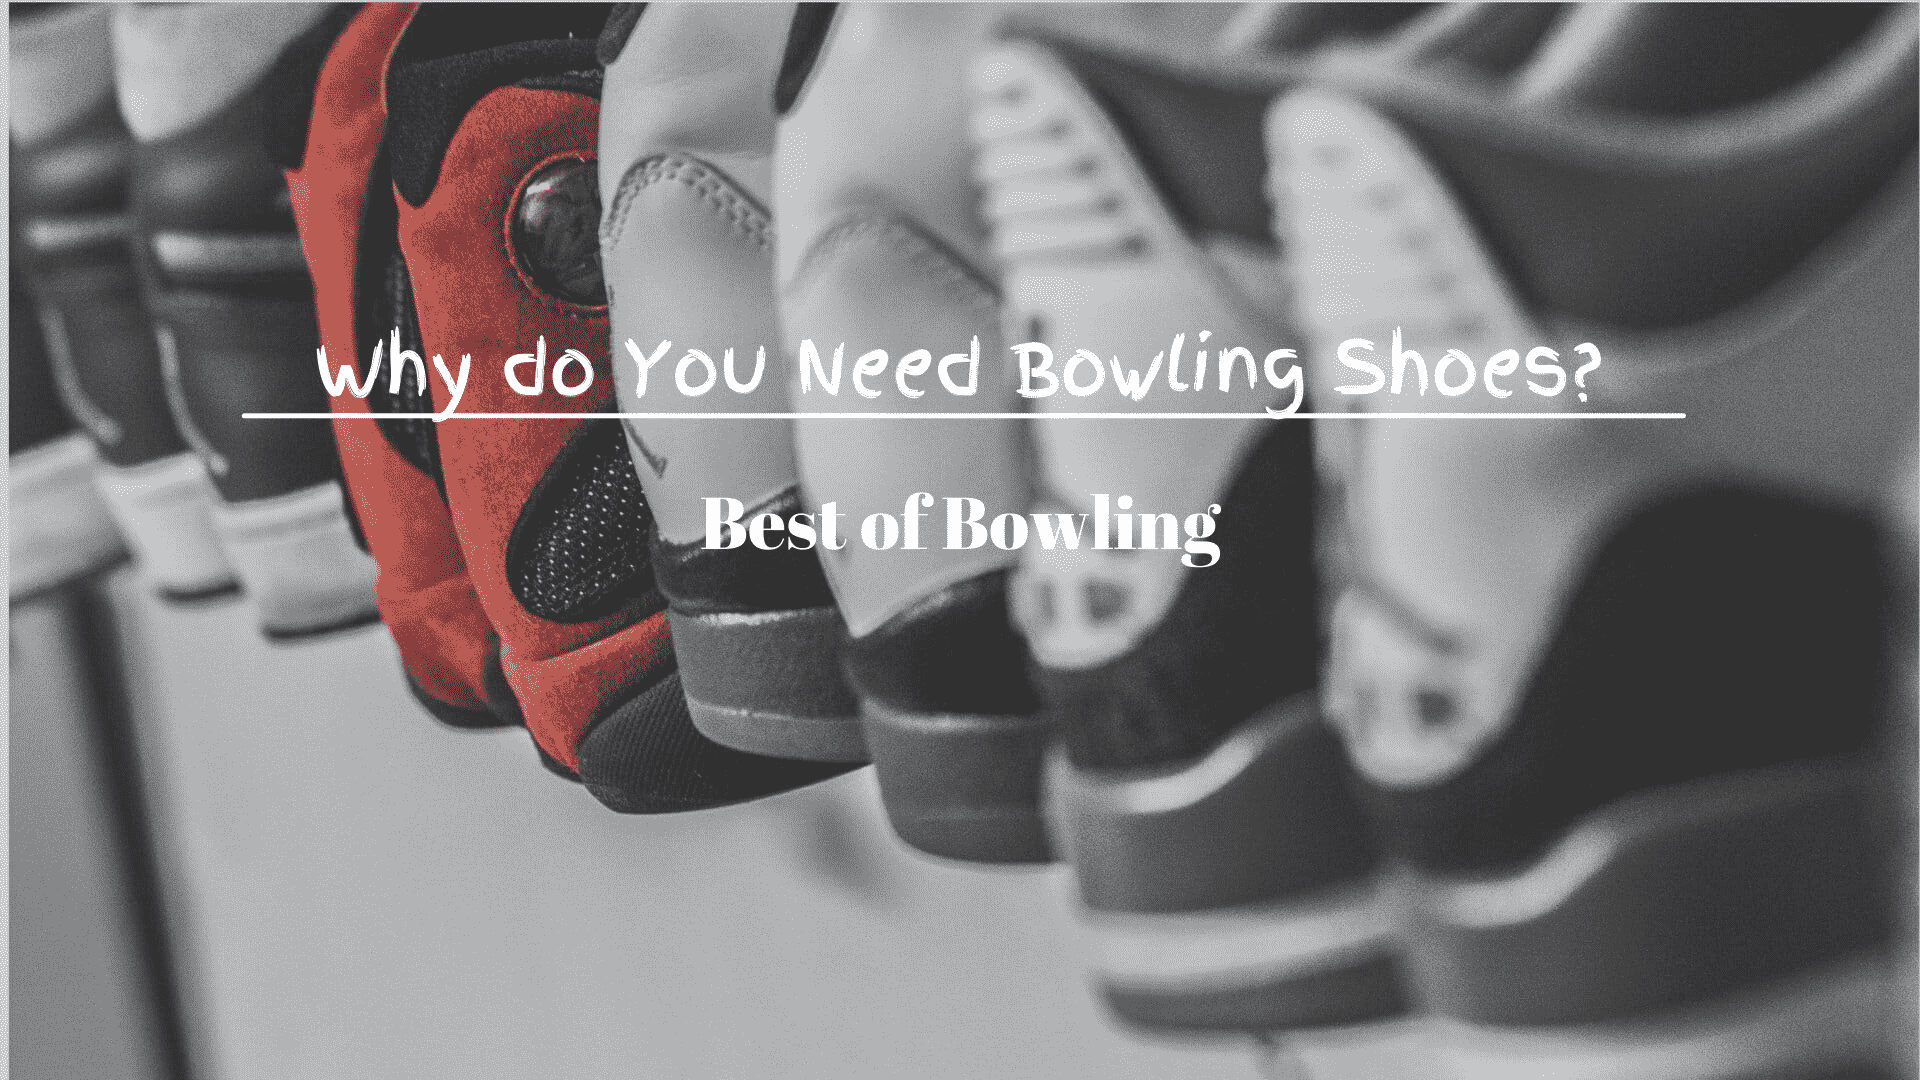 Why do You Need Bowling Shoes?